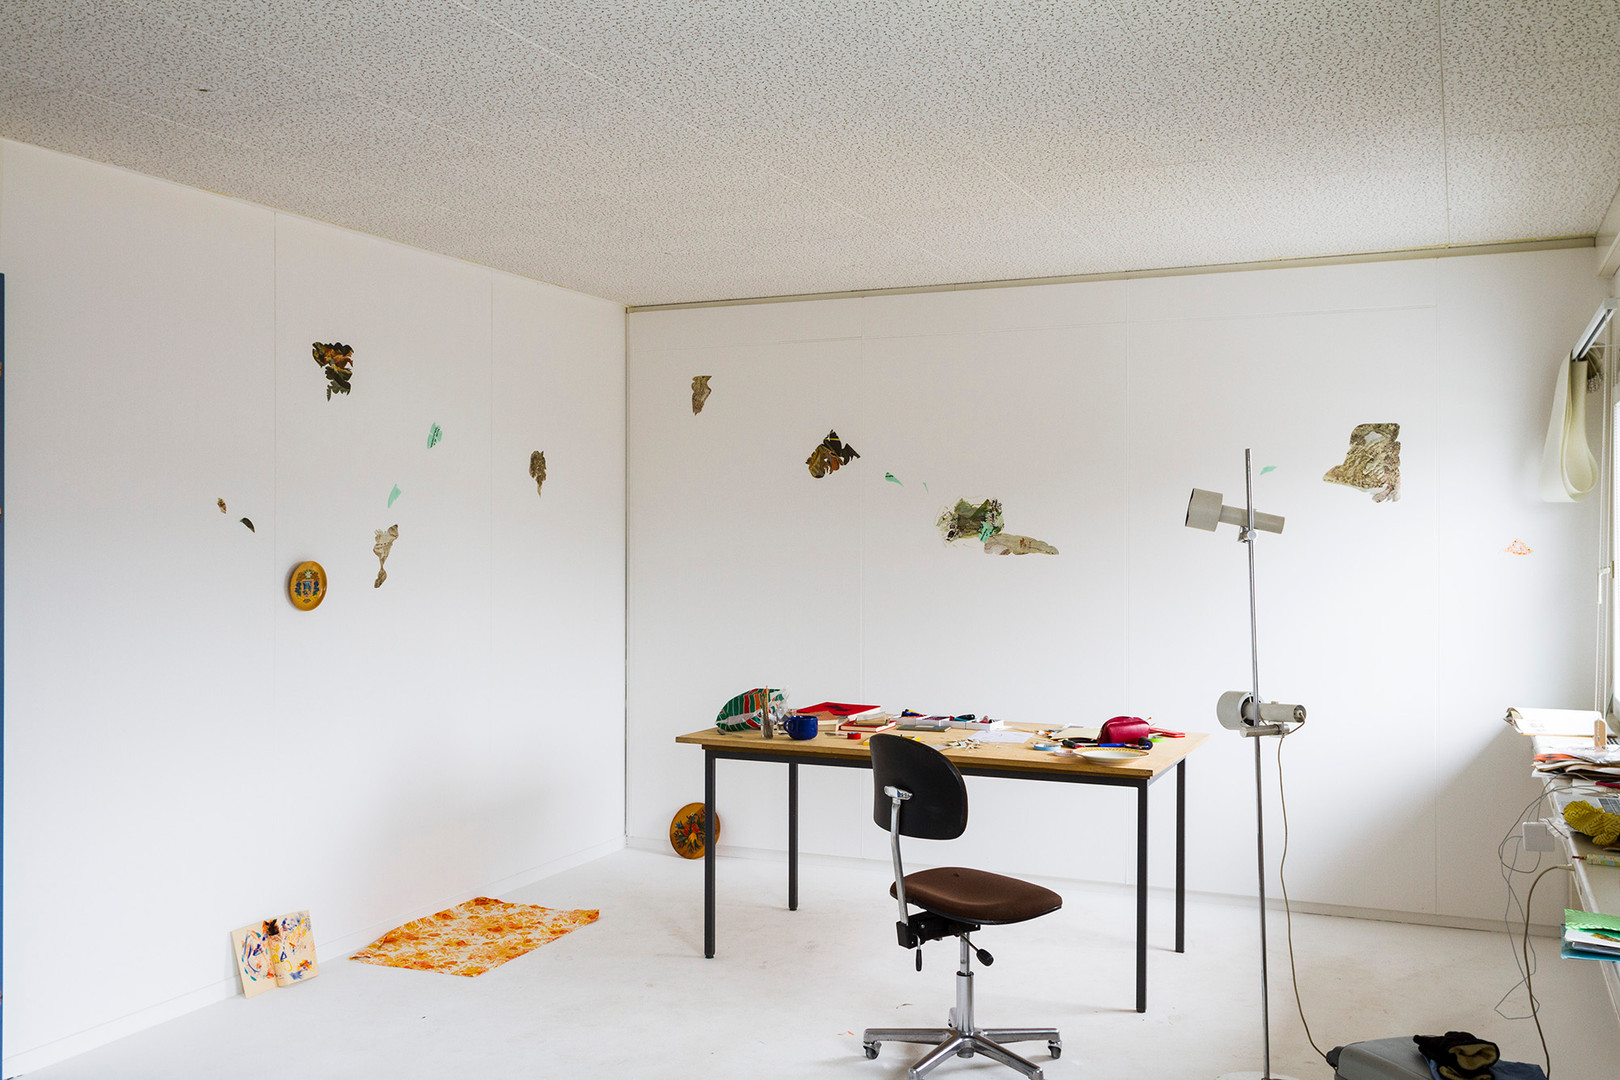 Studio at INDEX Residency, Zurich, Switzerland